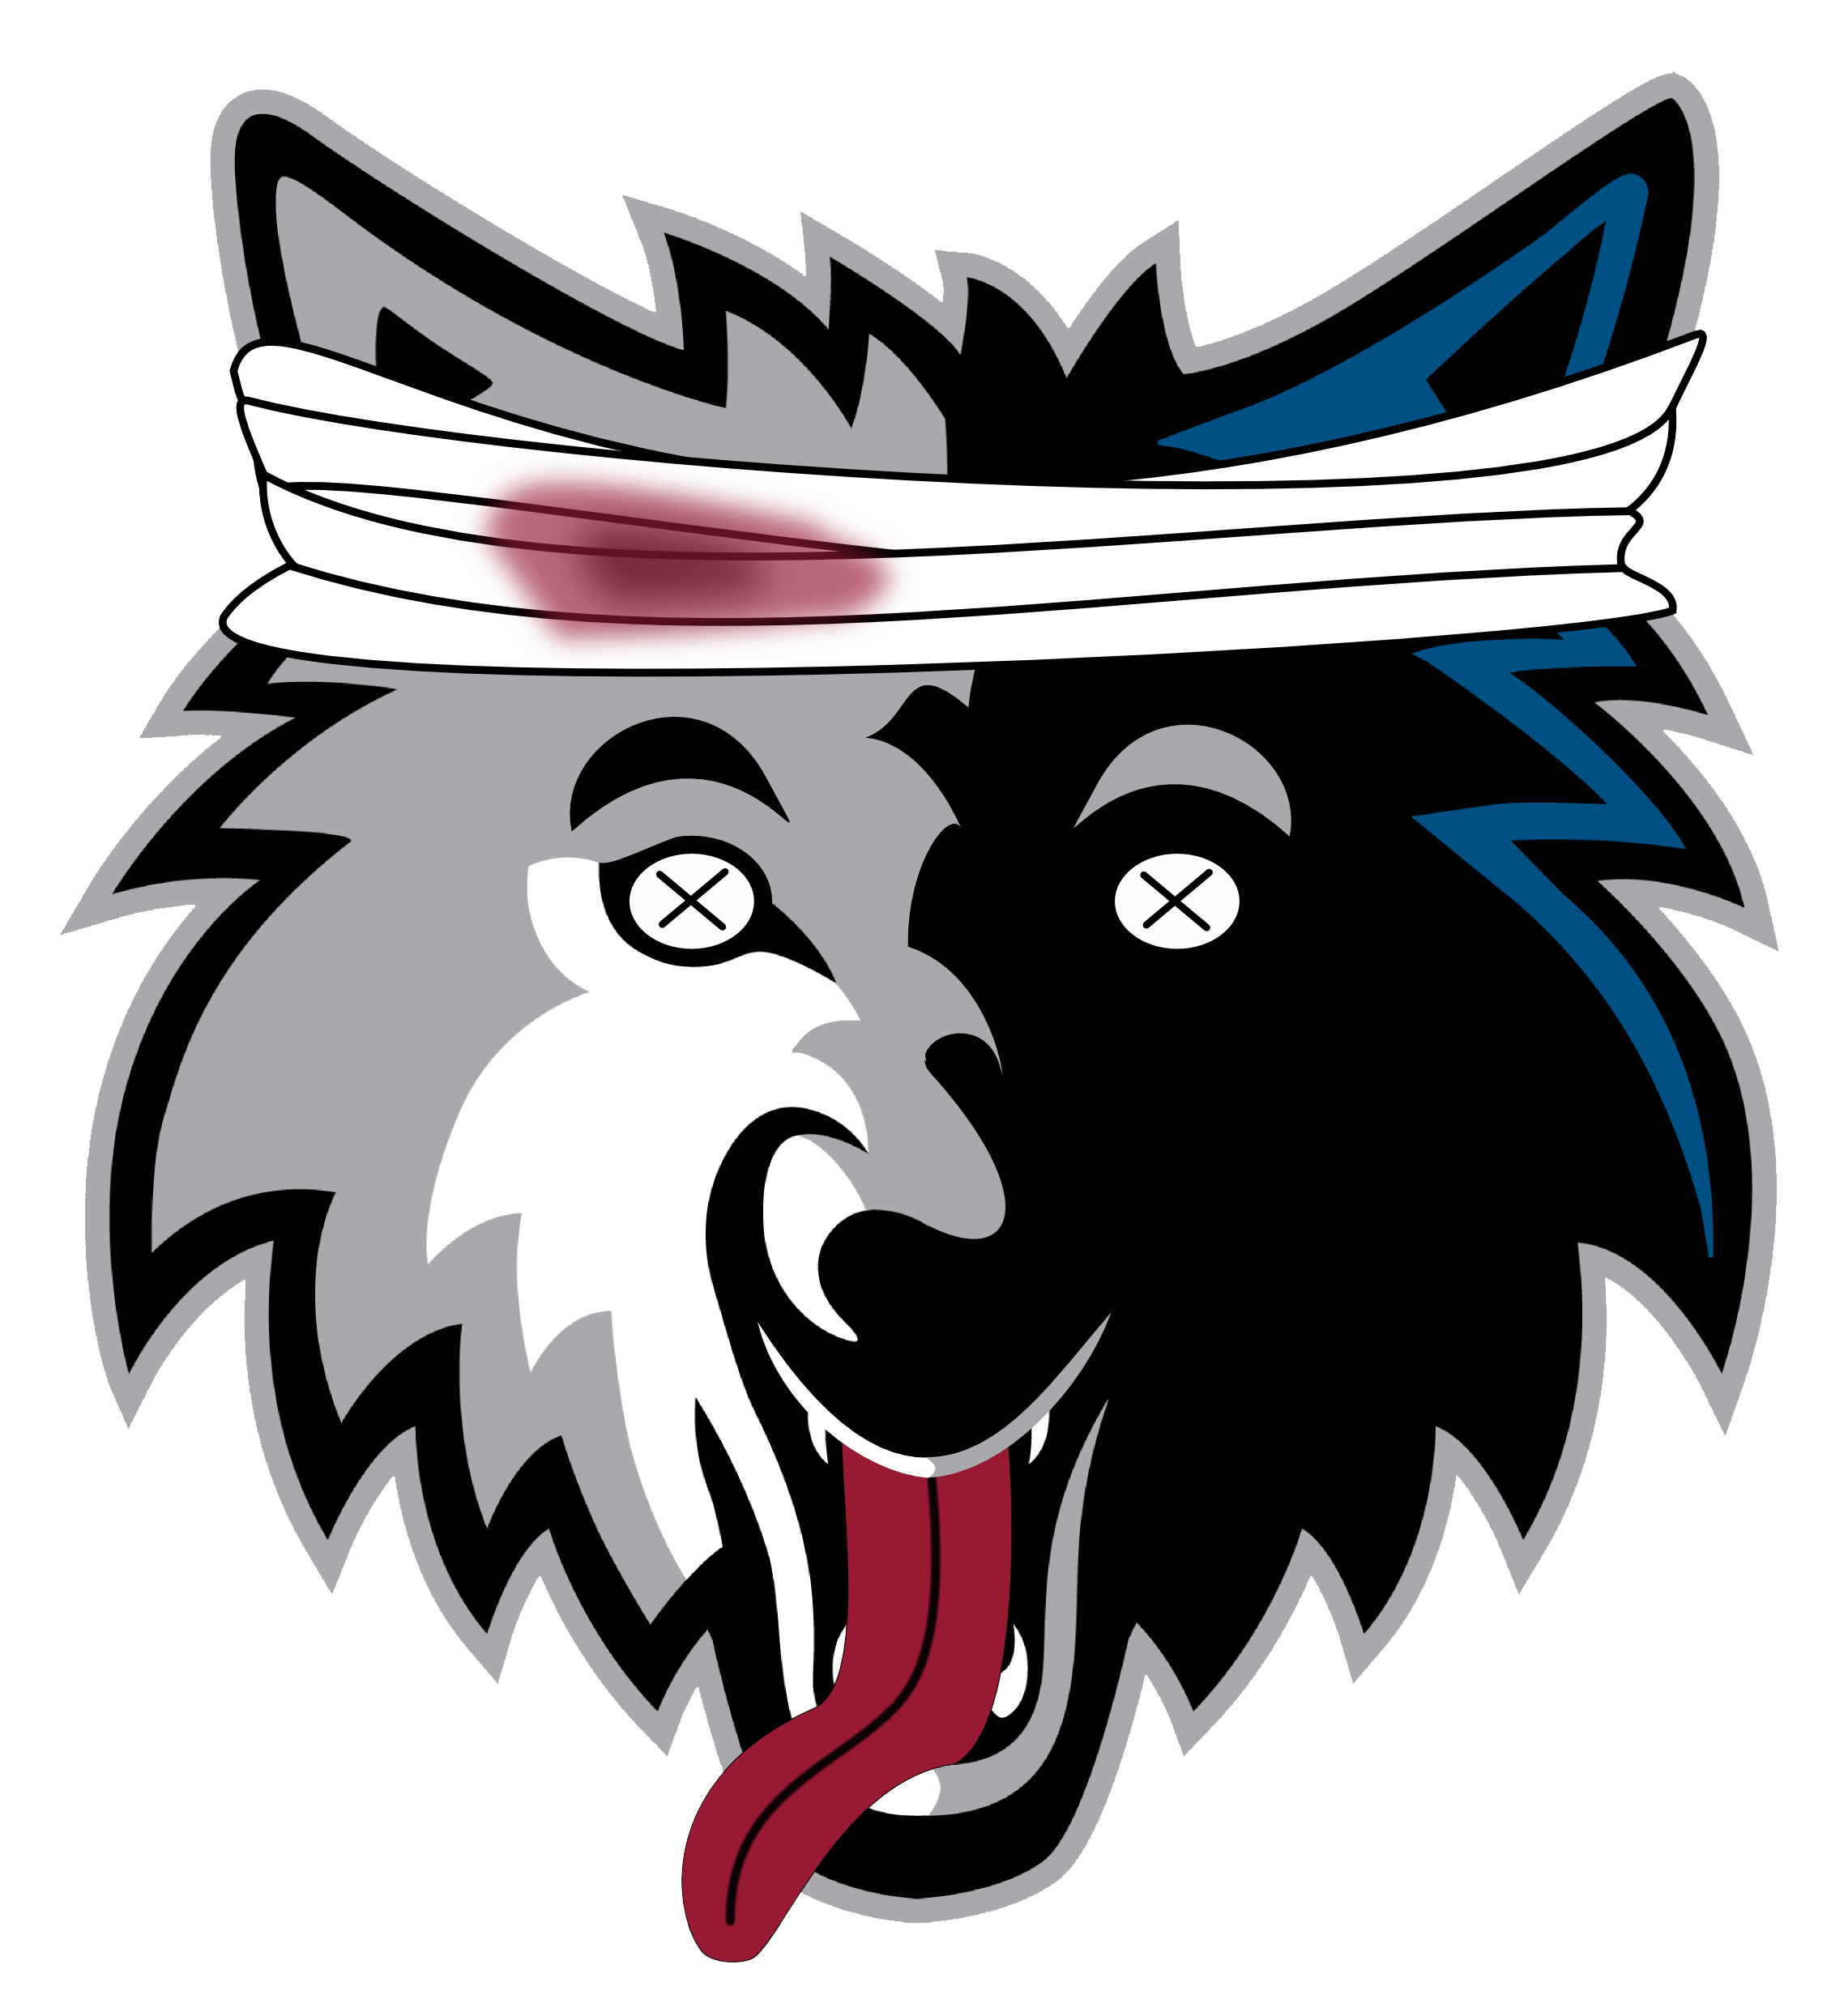 Download PNG image - Timberwolves Logo Png Clipart 470